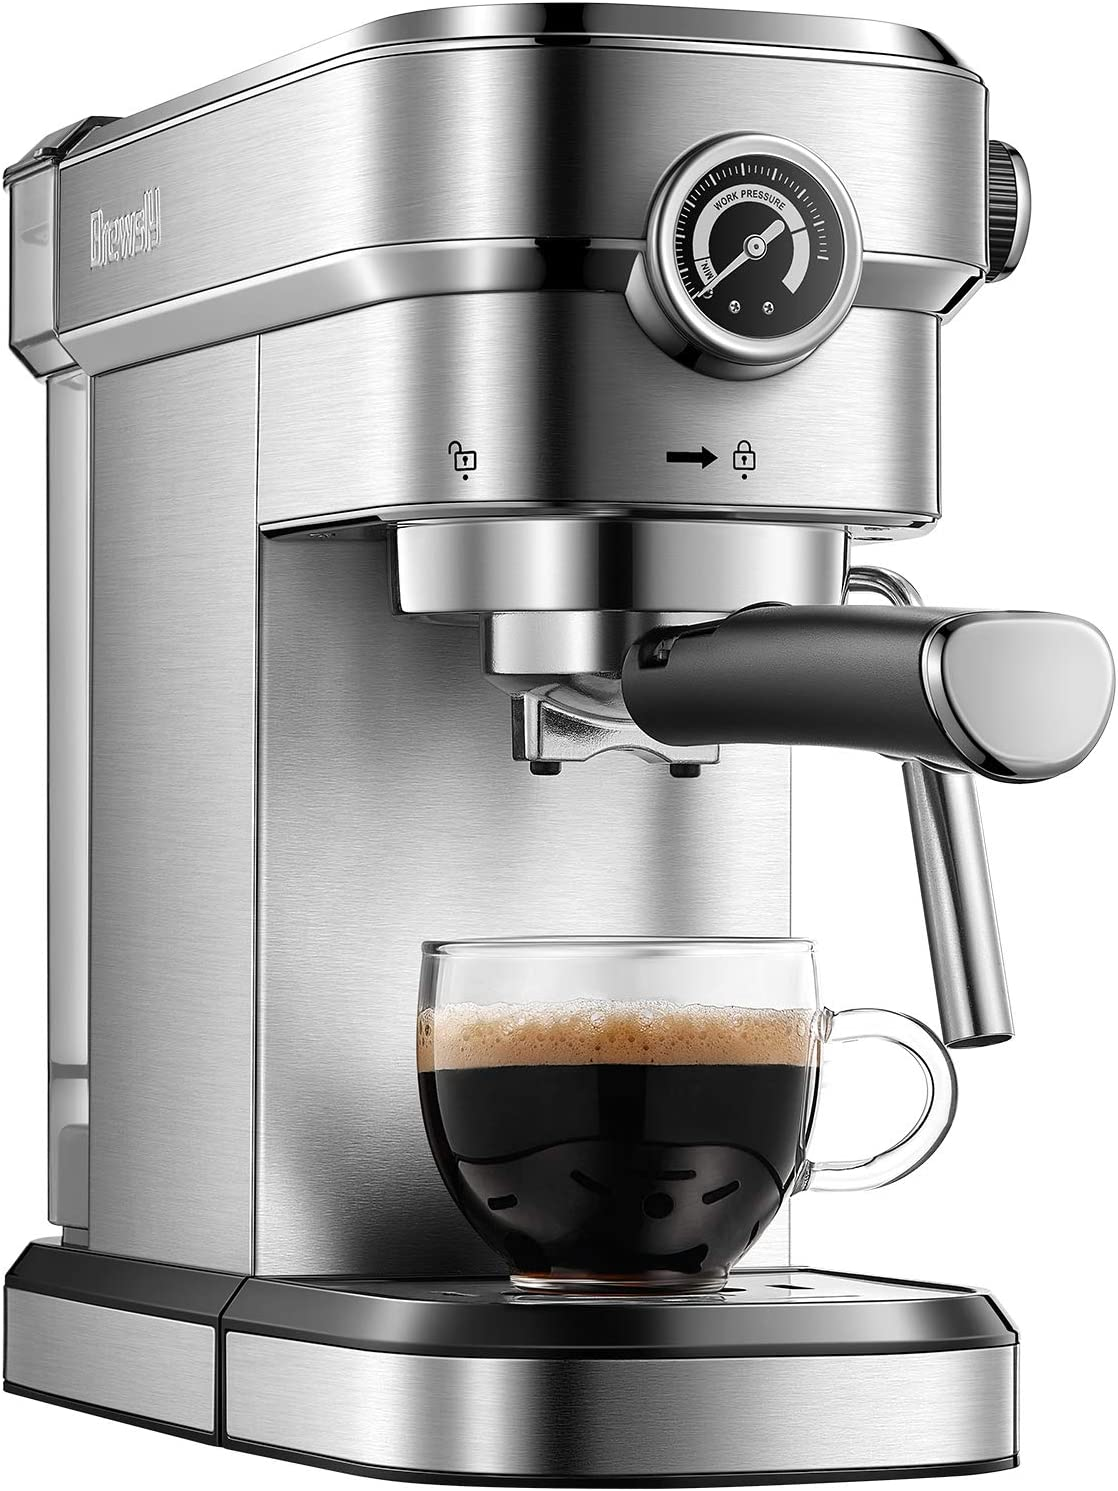 Brewsly 15 Bar Espresso Machine, Stainless Steel Compact Espresso Maker with Milk Frother Wand , Professional Coffee Machine for Espresso, Cappuccino and Latte